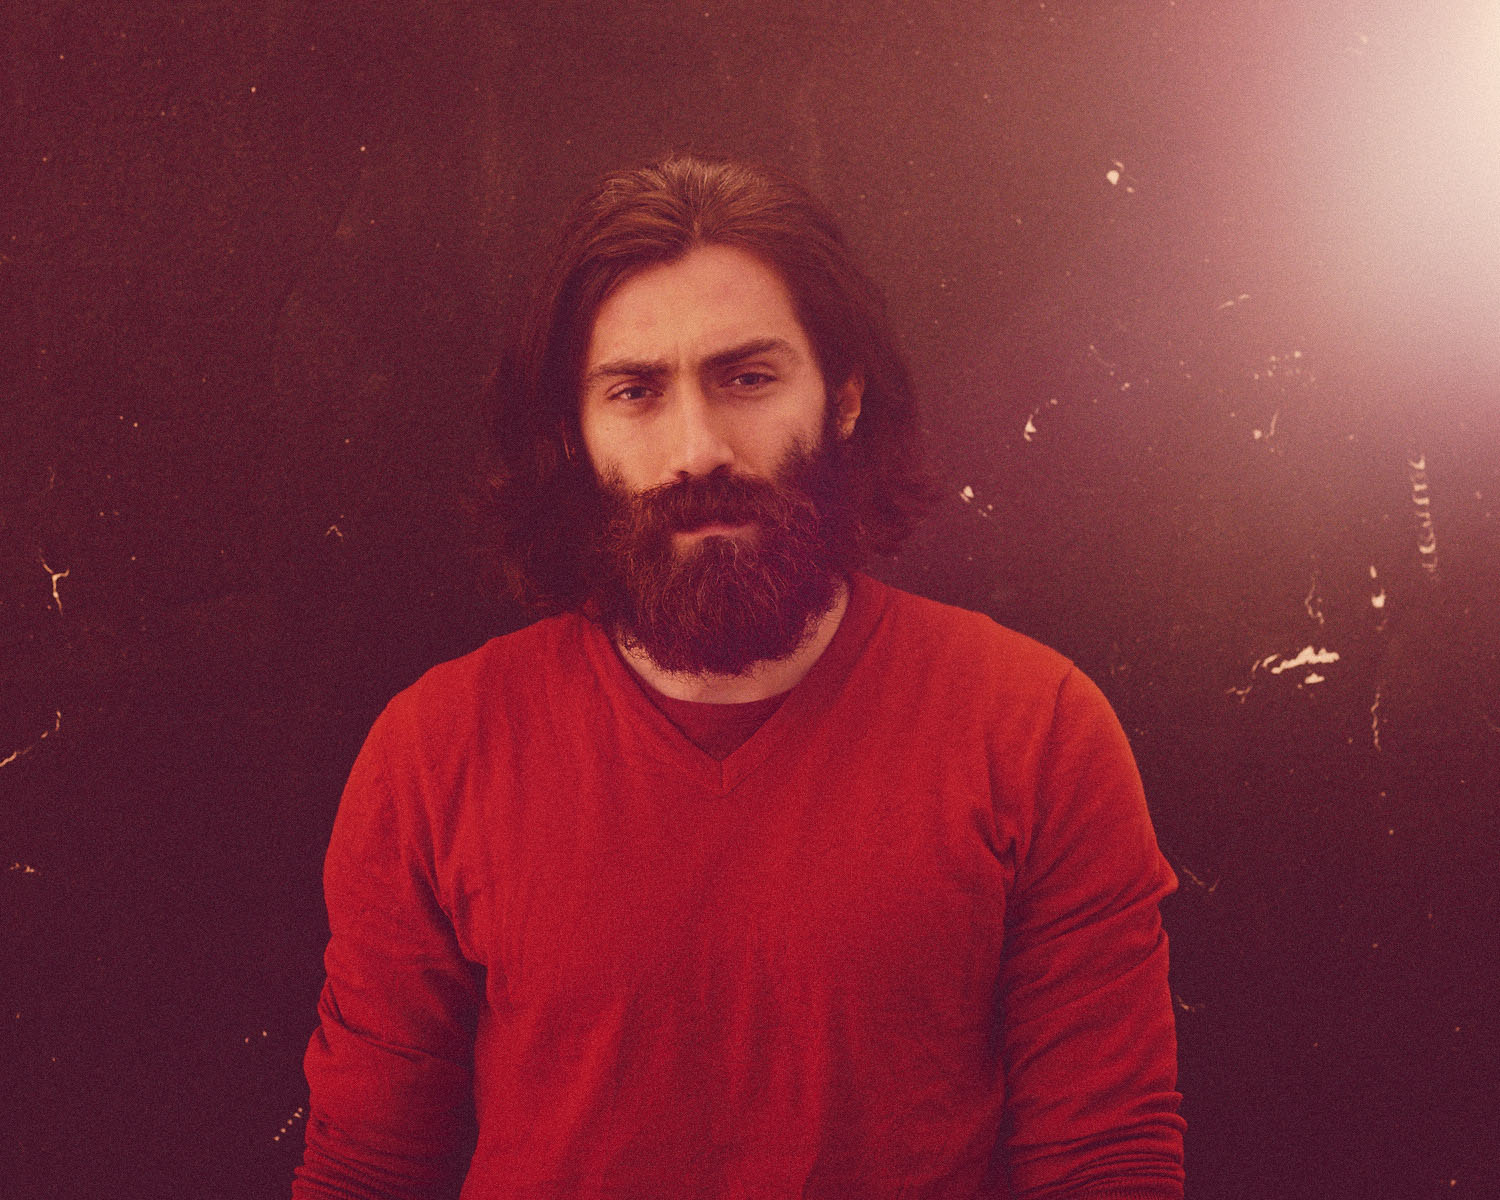 Bearded man, red jumper, by portrait photographer Tim Cole